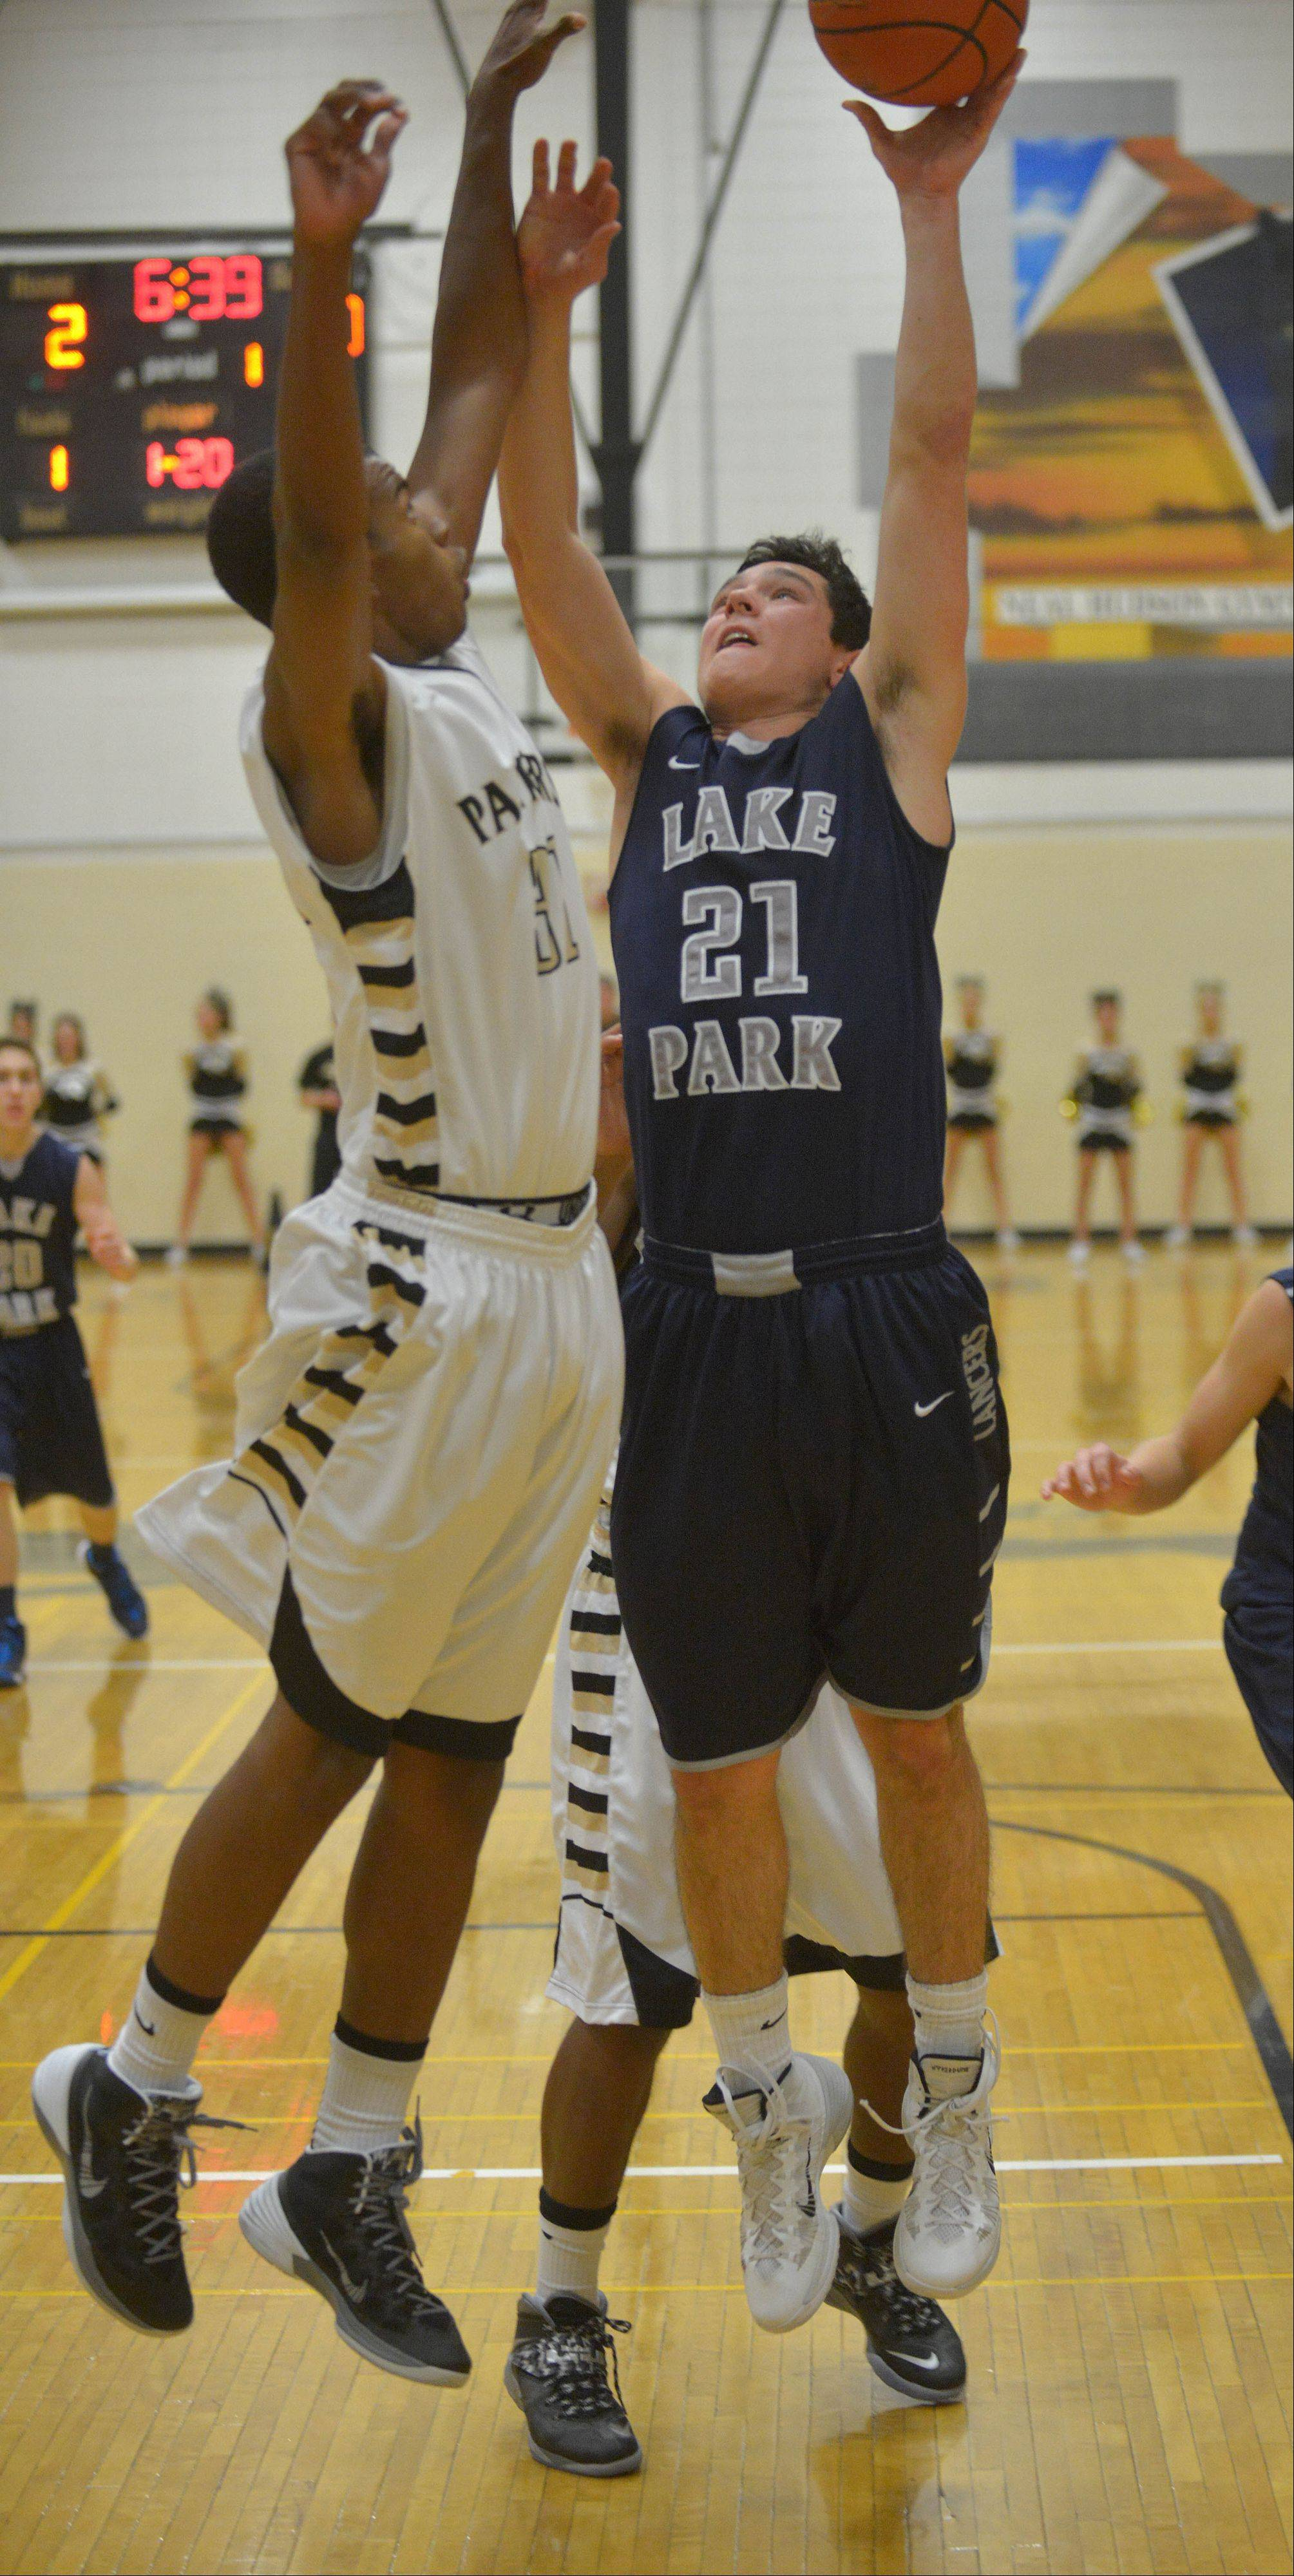 Chip Flanigan of Glenbard North and Michael Karas of Lake Park go for a rebound.